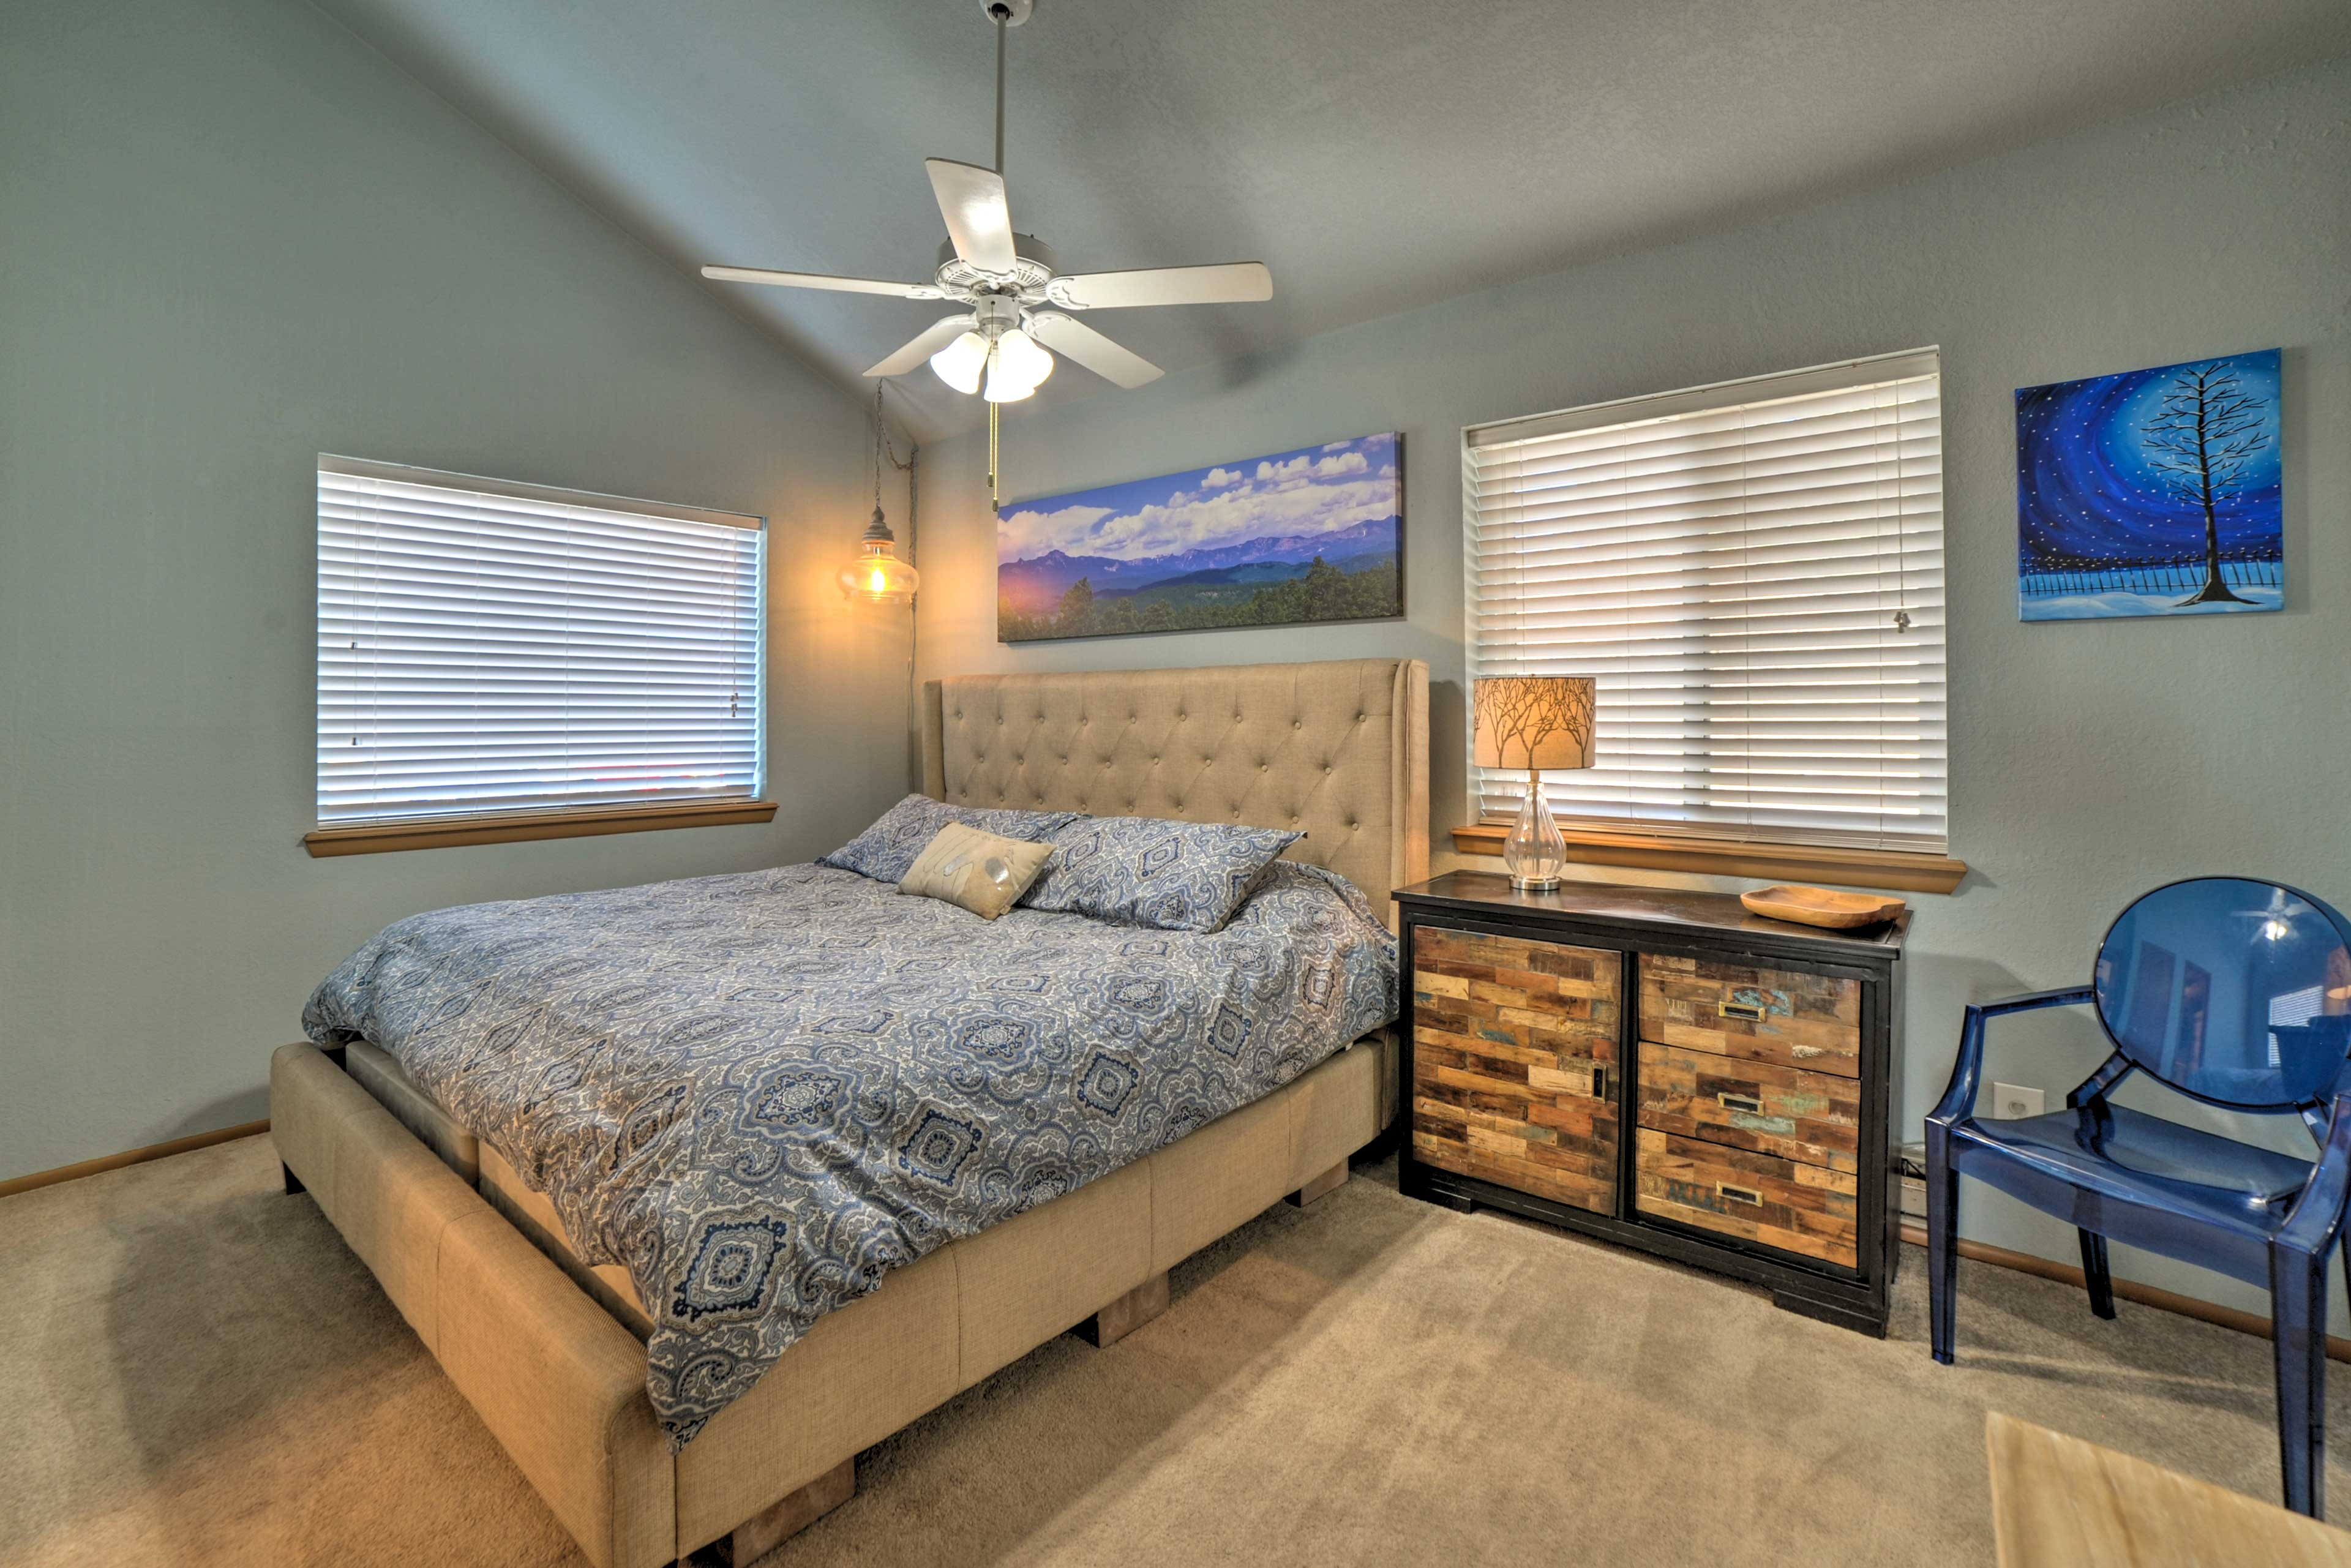 The comfortable master bedroom includes a king-sized bed.